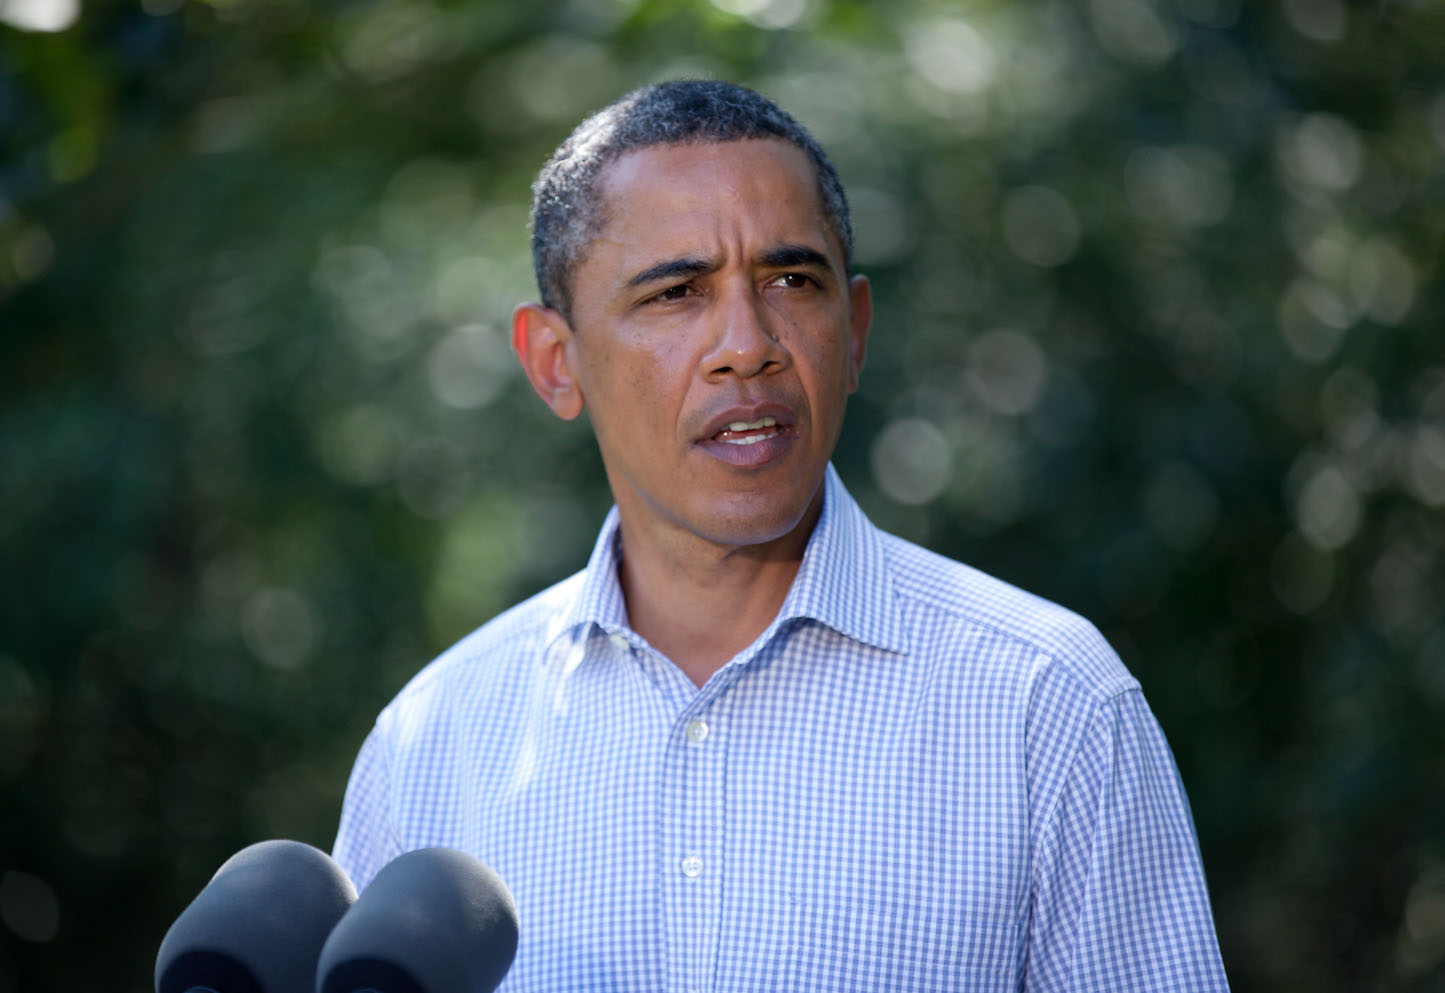 President Barack Obama makes statement on Hurricane Irene